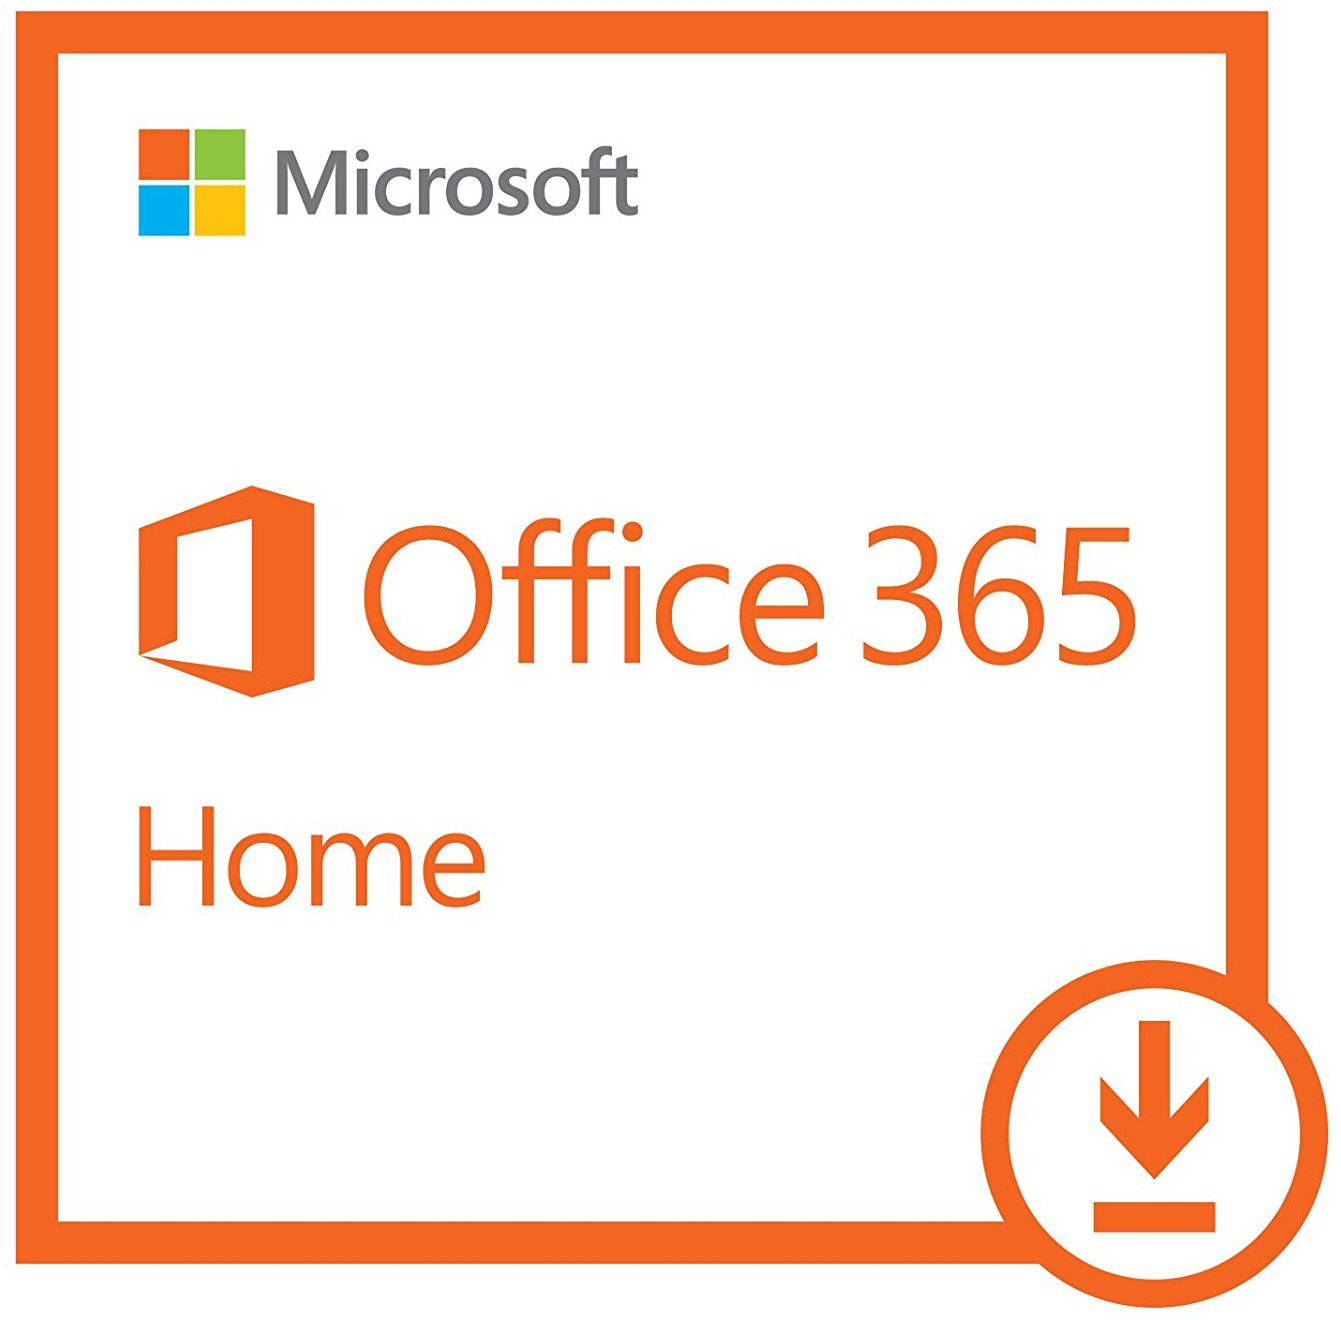 Amazon.com: Microsoft Office 365 Home | 1 Year Subscription | with ...